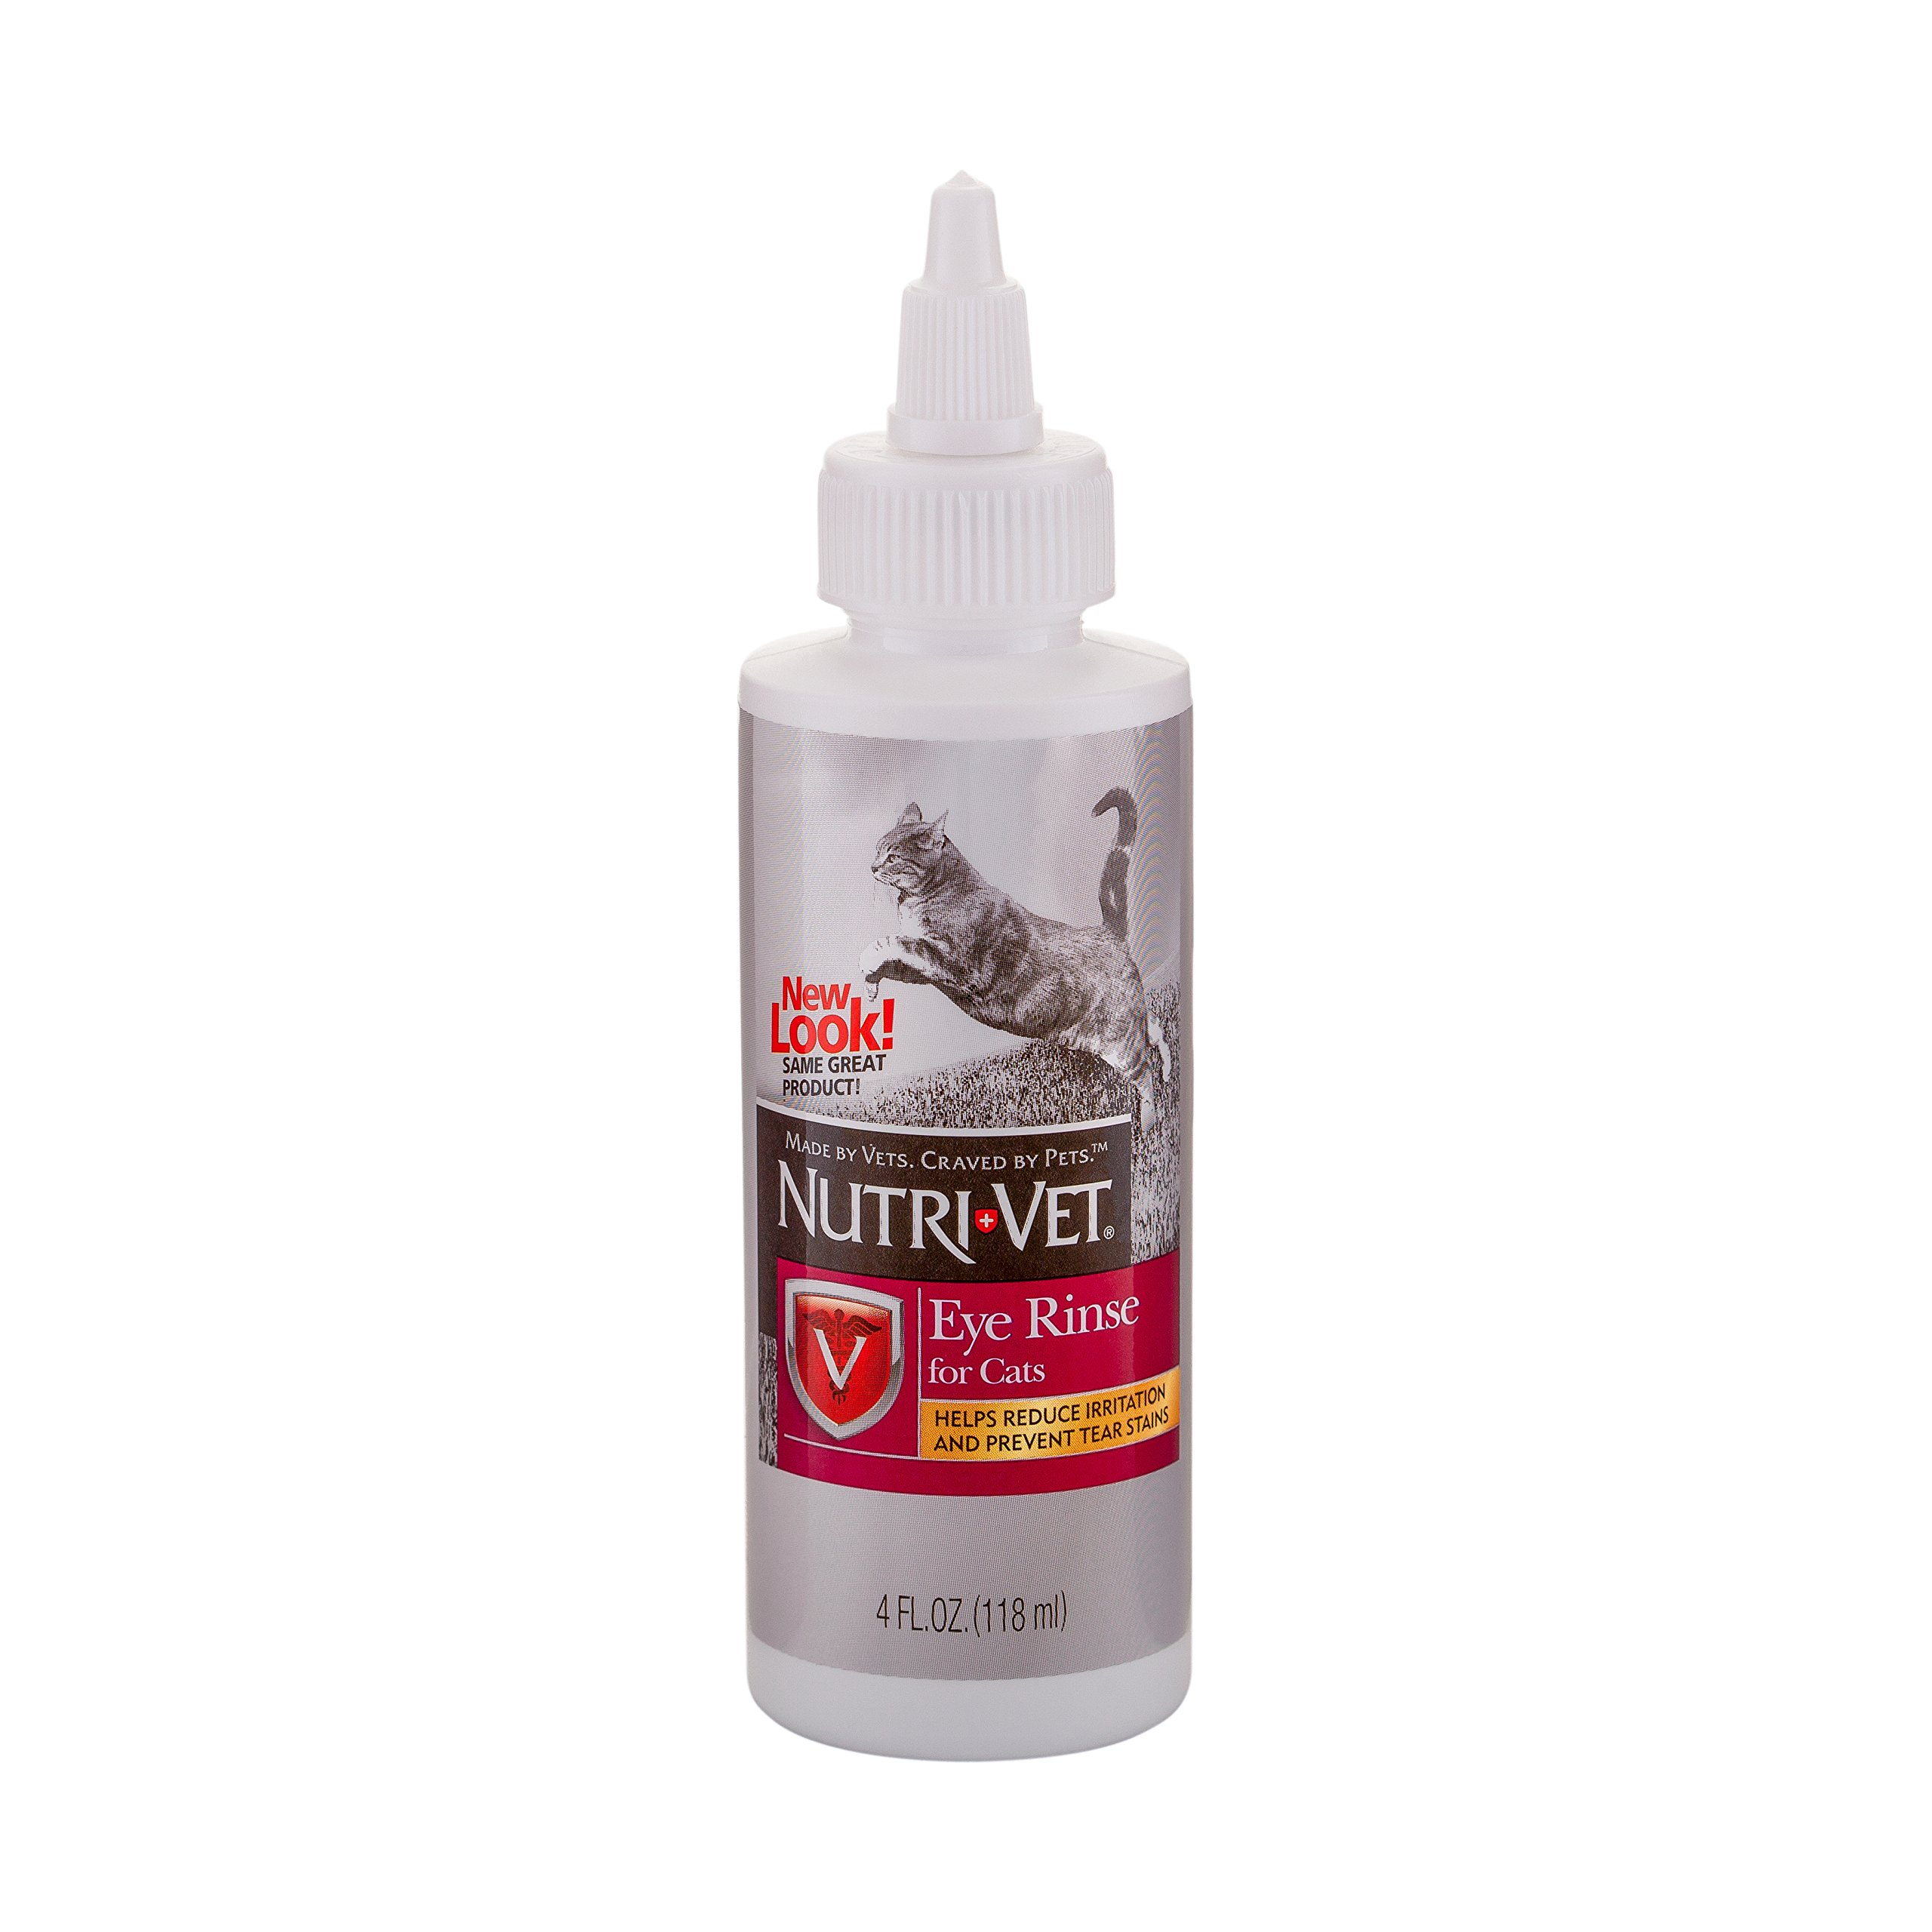 Nutri-Vet Eye Rinse for Cats | Gentle Formula Removes Debris | Helps Reduce Irritation and Prevent Tear Stains | 4oz